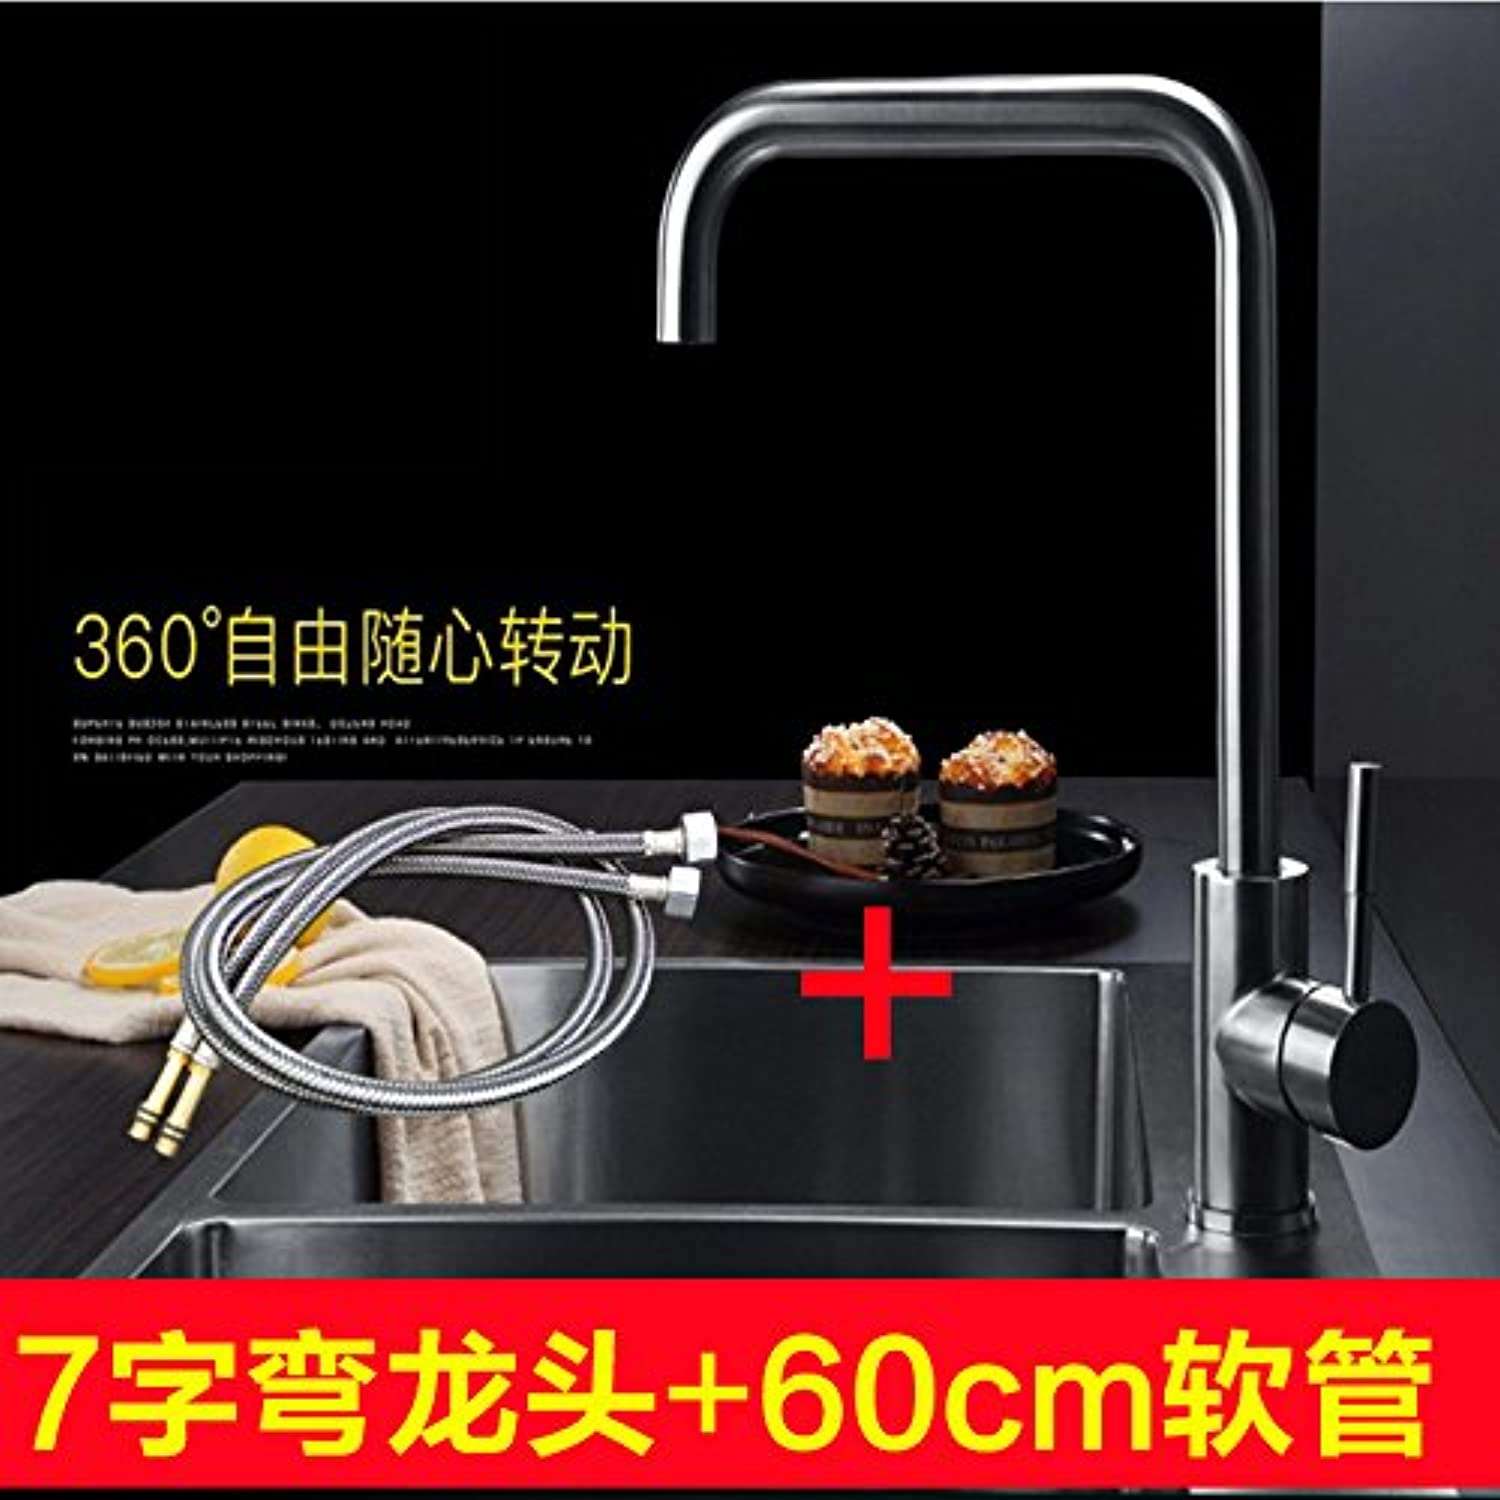 Gyps Faucet Basin Tap Faucet The High kitchen dish washing basin of cold water faucet 304 stainless steel lead free water faucet brushed stainless steel 7 to redate the field elbow fittings + two 60cm